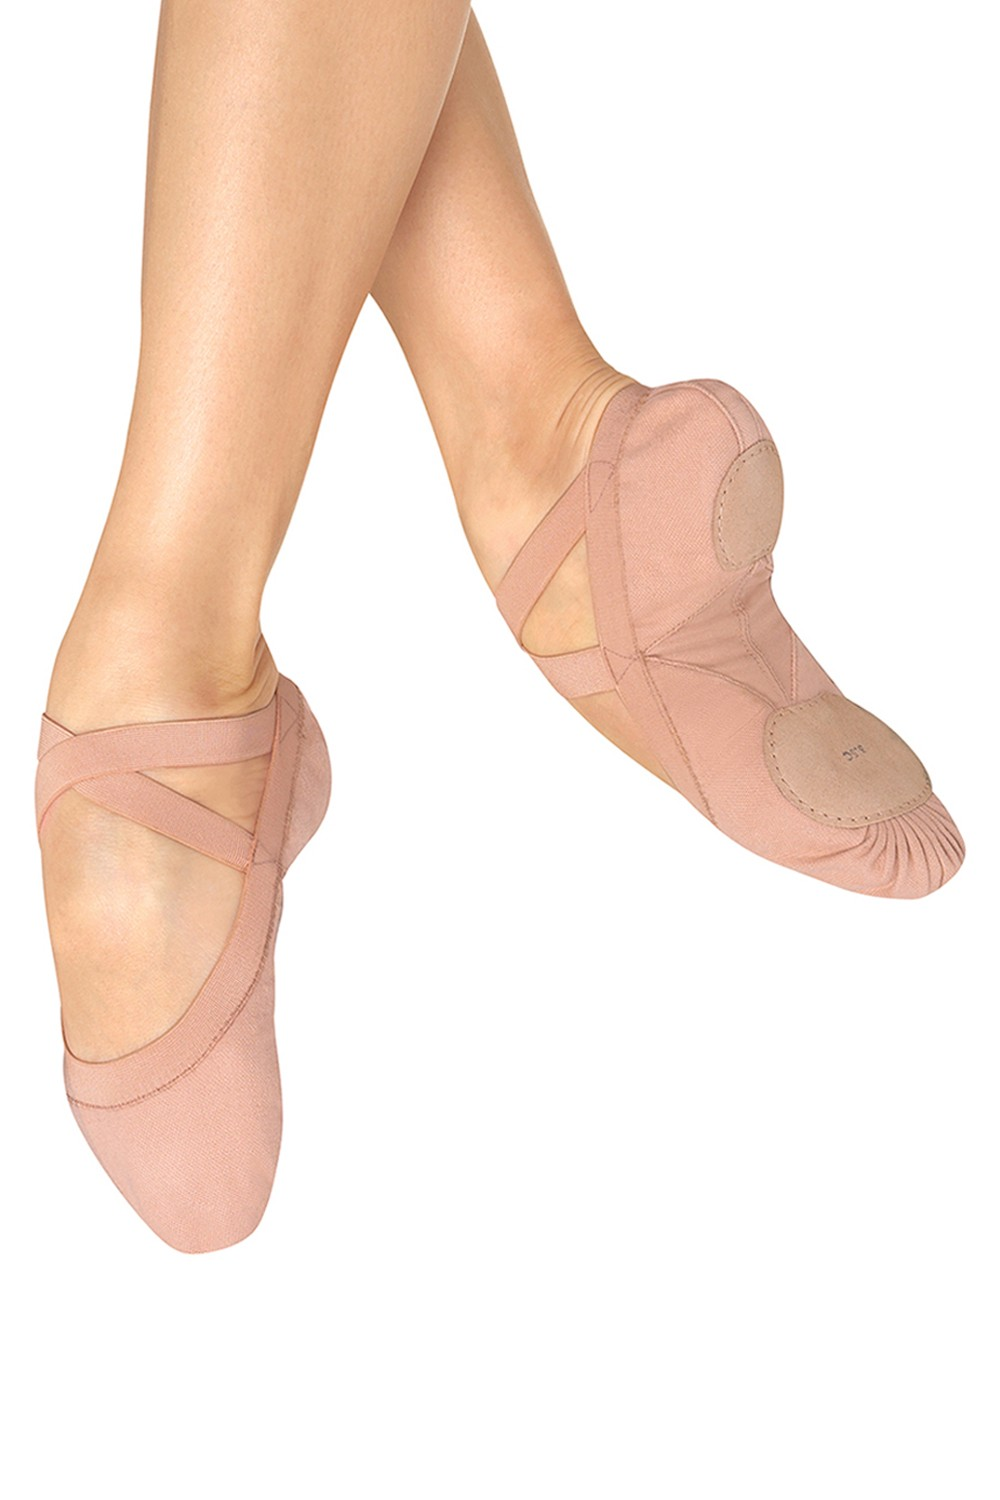 Pro Elastic - Girls Girl's Ballet Shoes